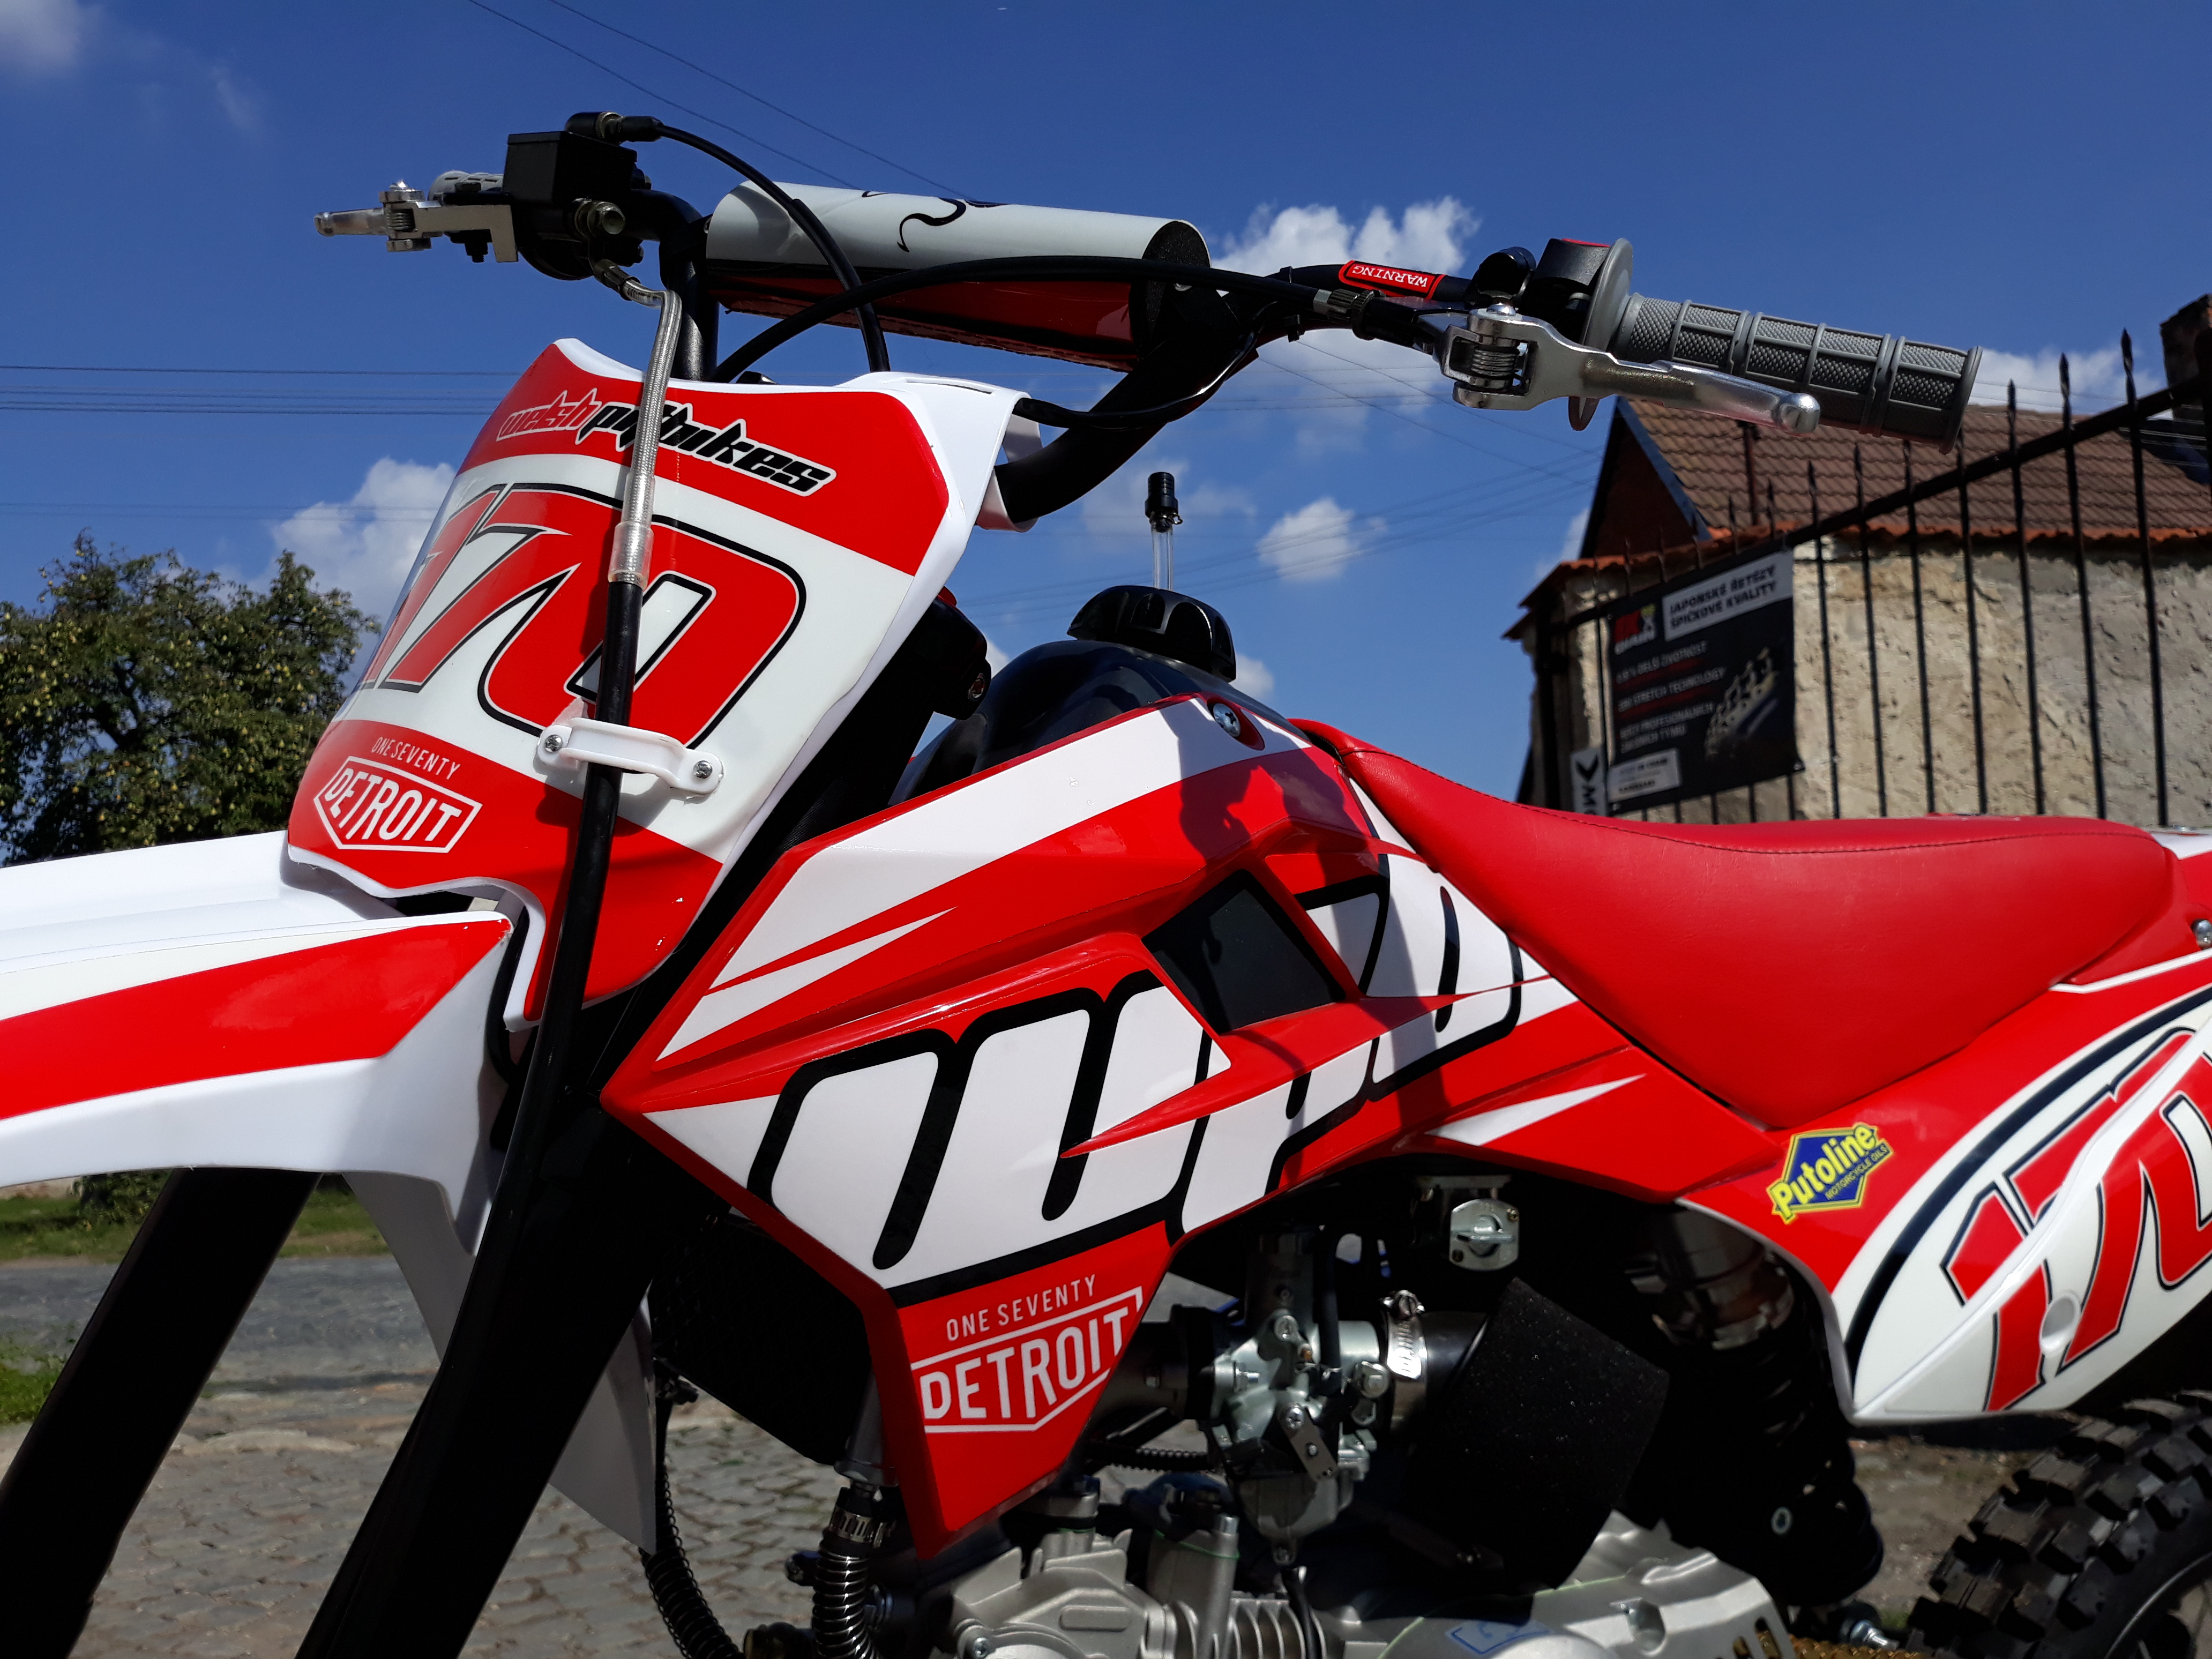 wpb pitbike 170